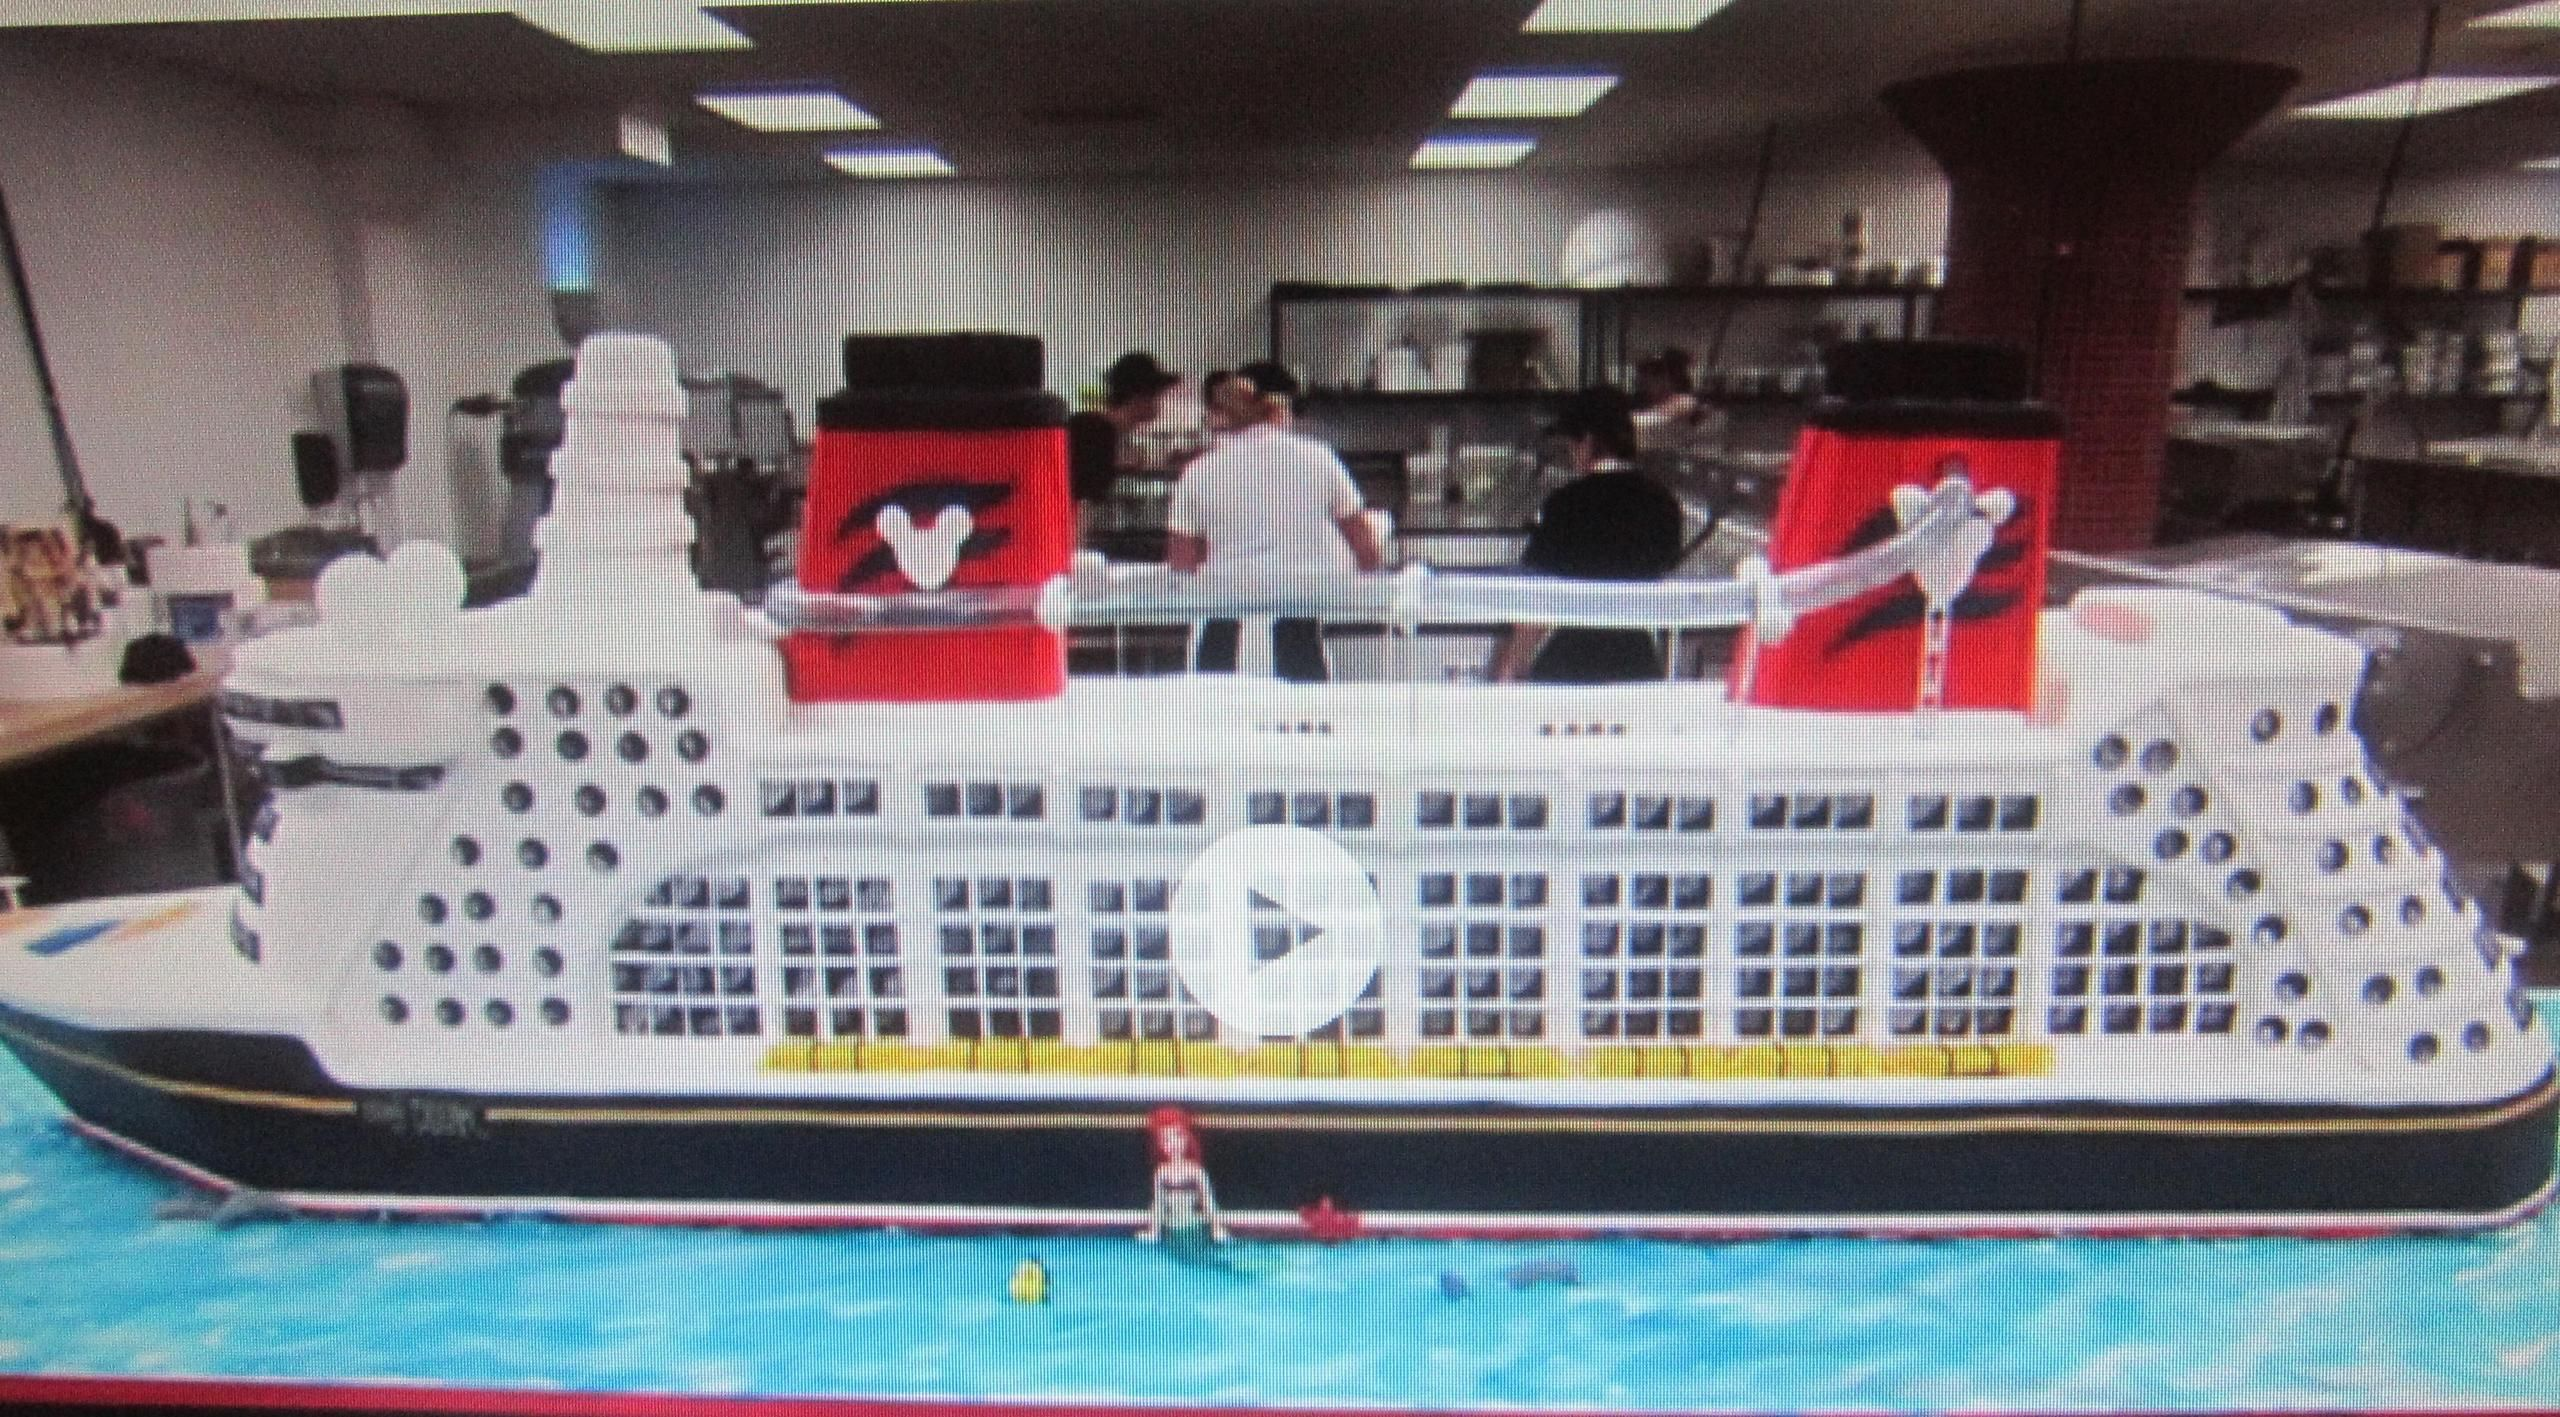 Pin by carolyn marsala on cakes wooow cake boss